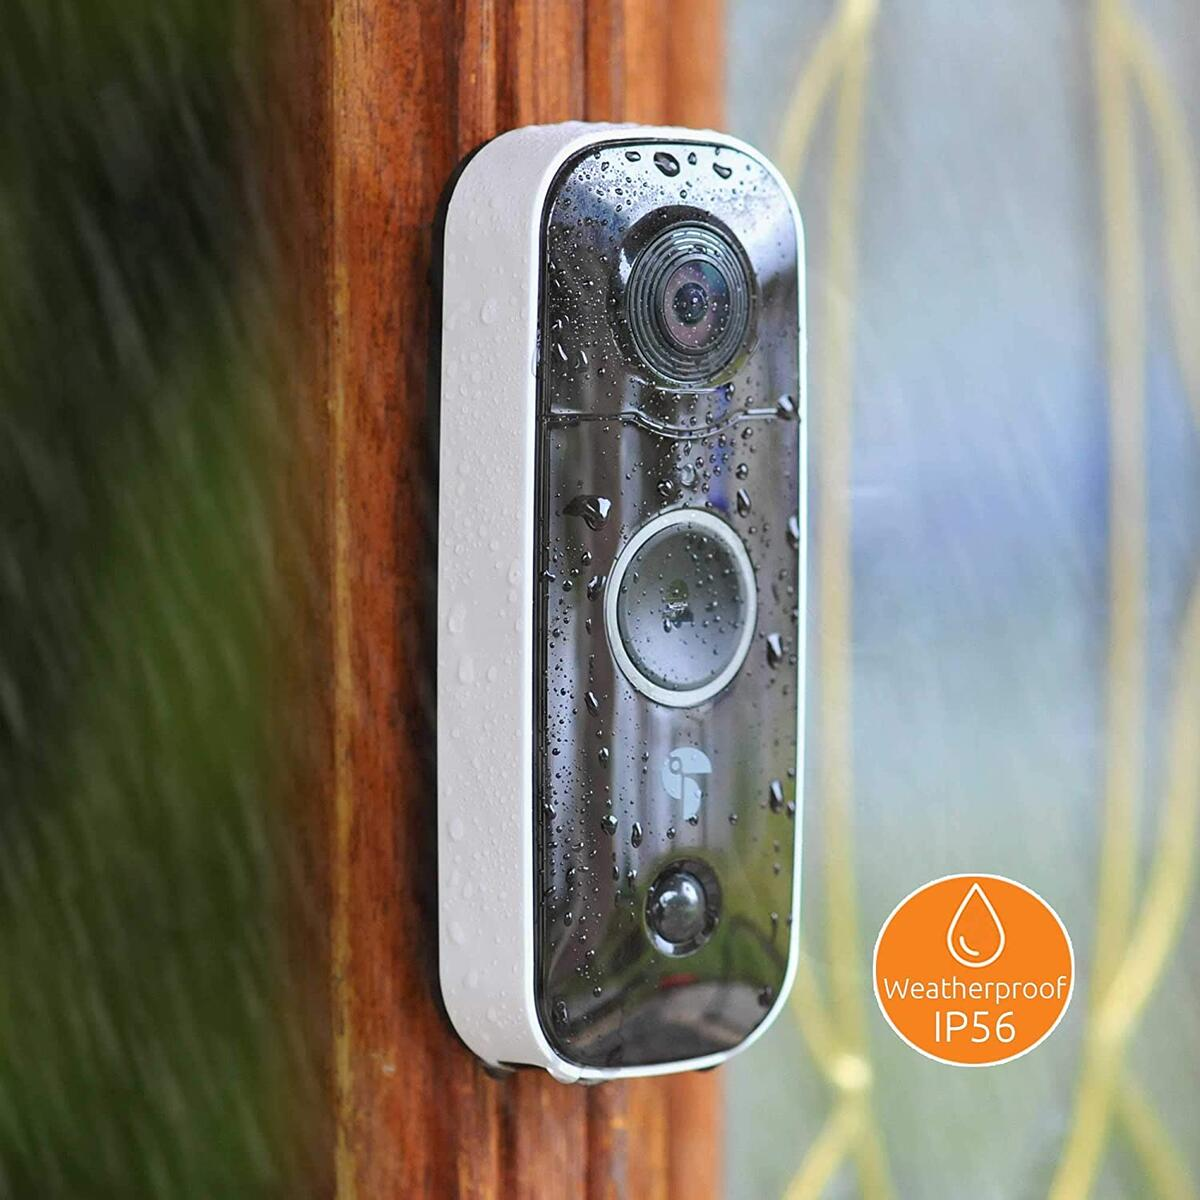 Video Doorbell 1080p HD with Chime, Doorbell Camera WiFi with Motion Detector, Smart Wireless Video Doorbell, Doorbell Camera 2 Way Audio with Night Vision, Weatherproof IP56, Wide Angle 180°,No Wire